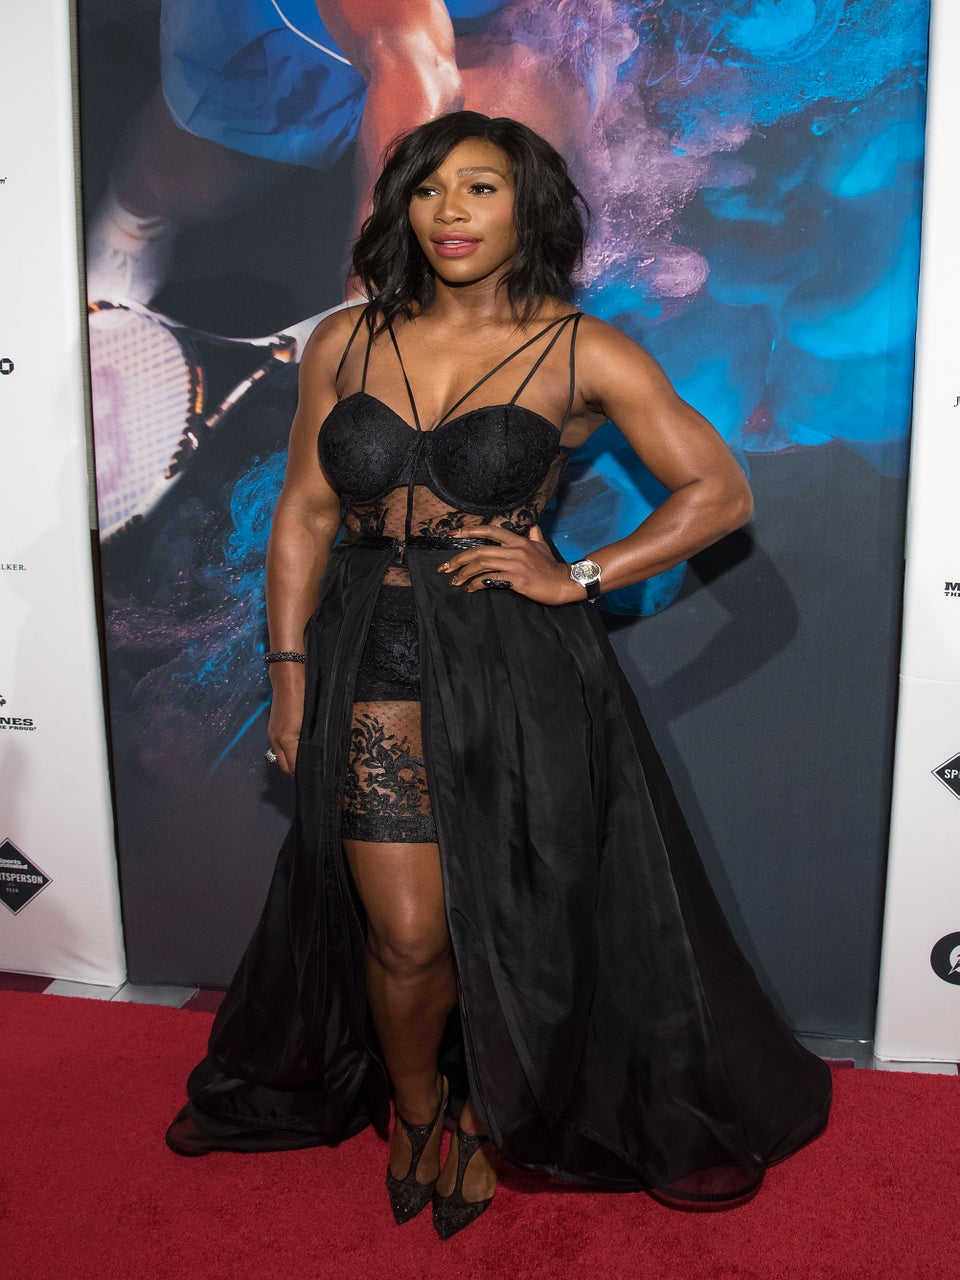 Sports Illustrated Ranks The 50 Most Stylish Athletes, Including Serena Williams and Misty Copeland